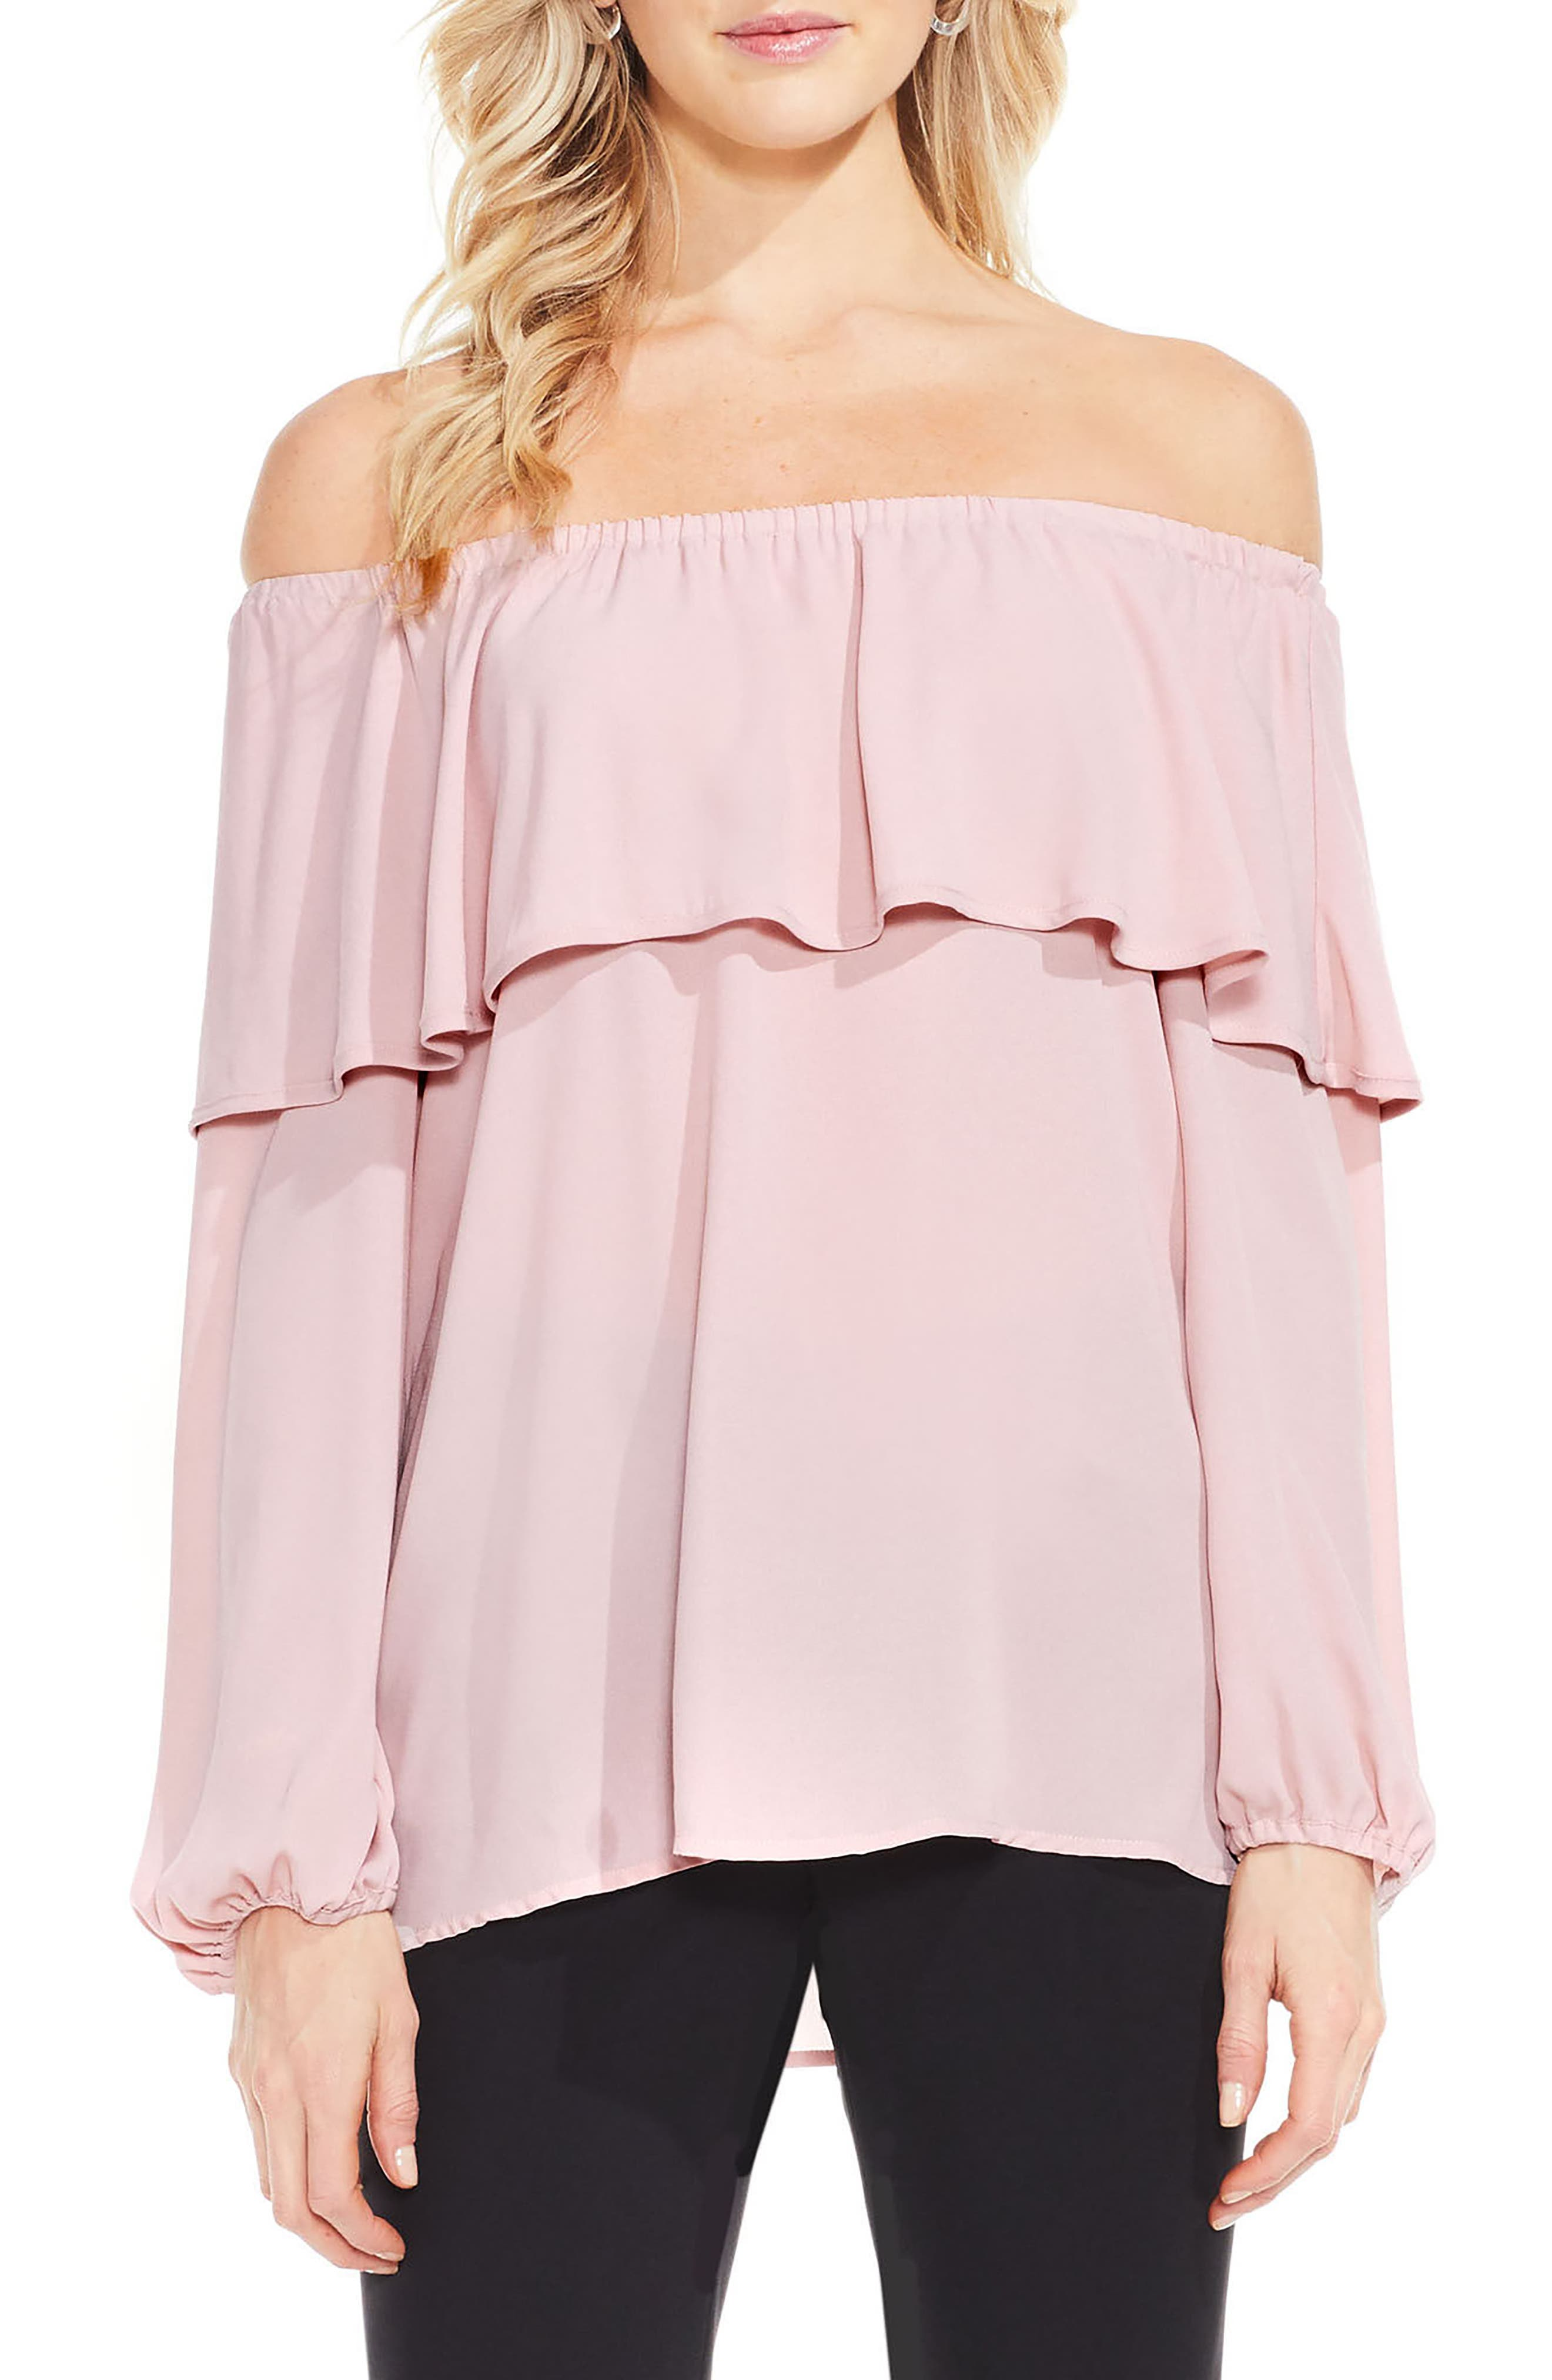 Alternate Image 1 Selected - Vince Camuto Ruffle Off the Shoulder Blouse